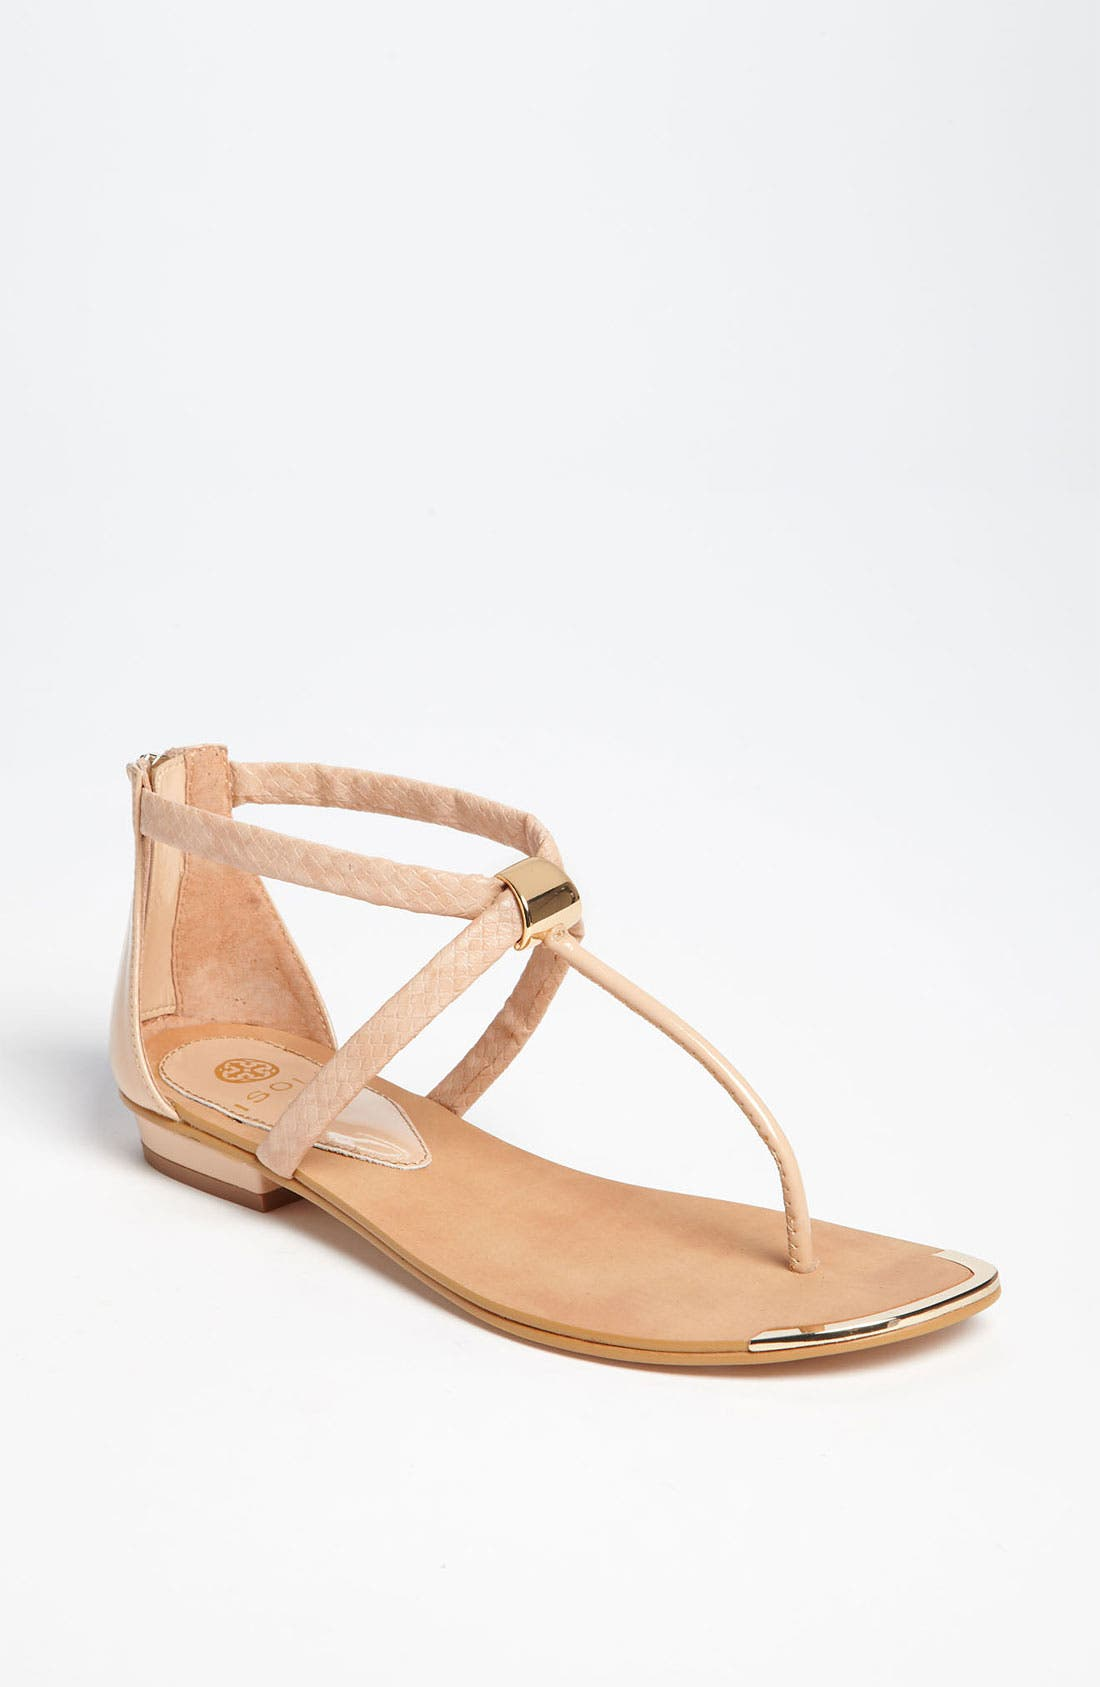 Alternate Image 1 Selected - ISOLA ADELINA FLAT SANDAL